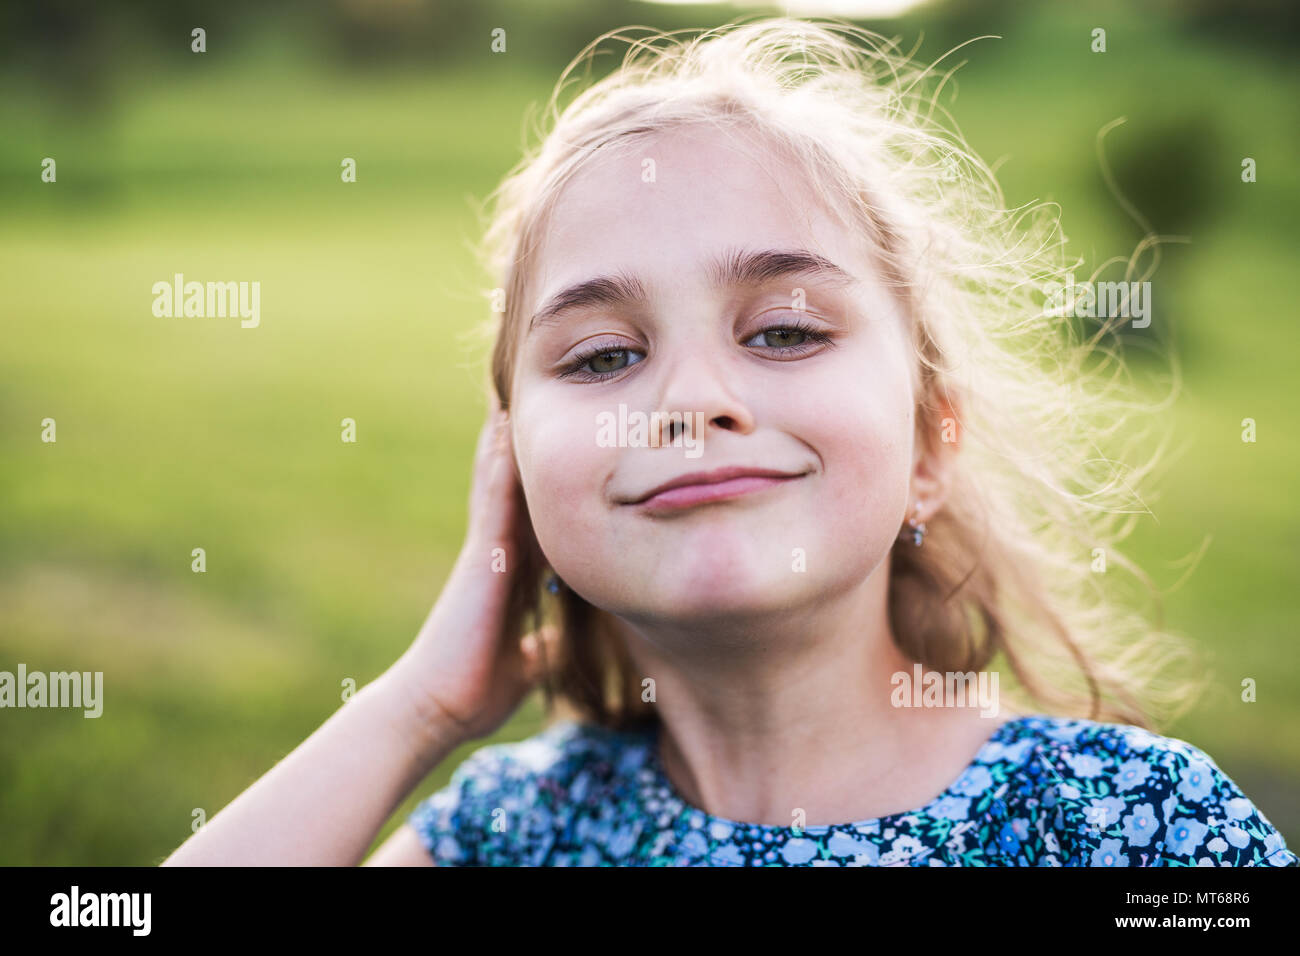 A small girl in the garden in spring nature. - Stock Image